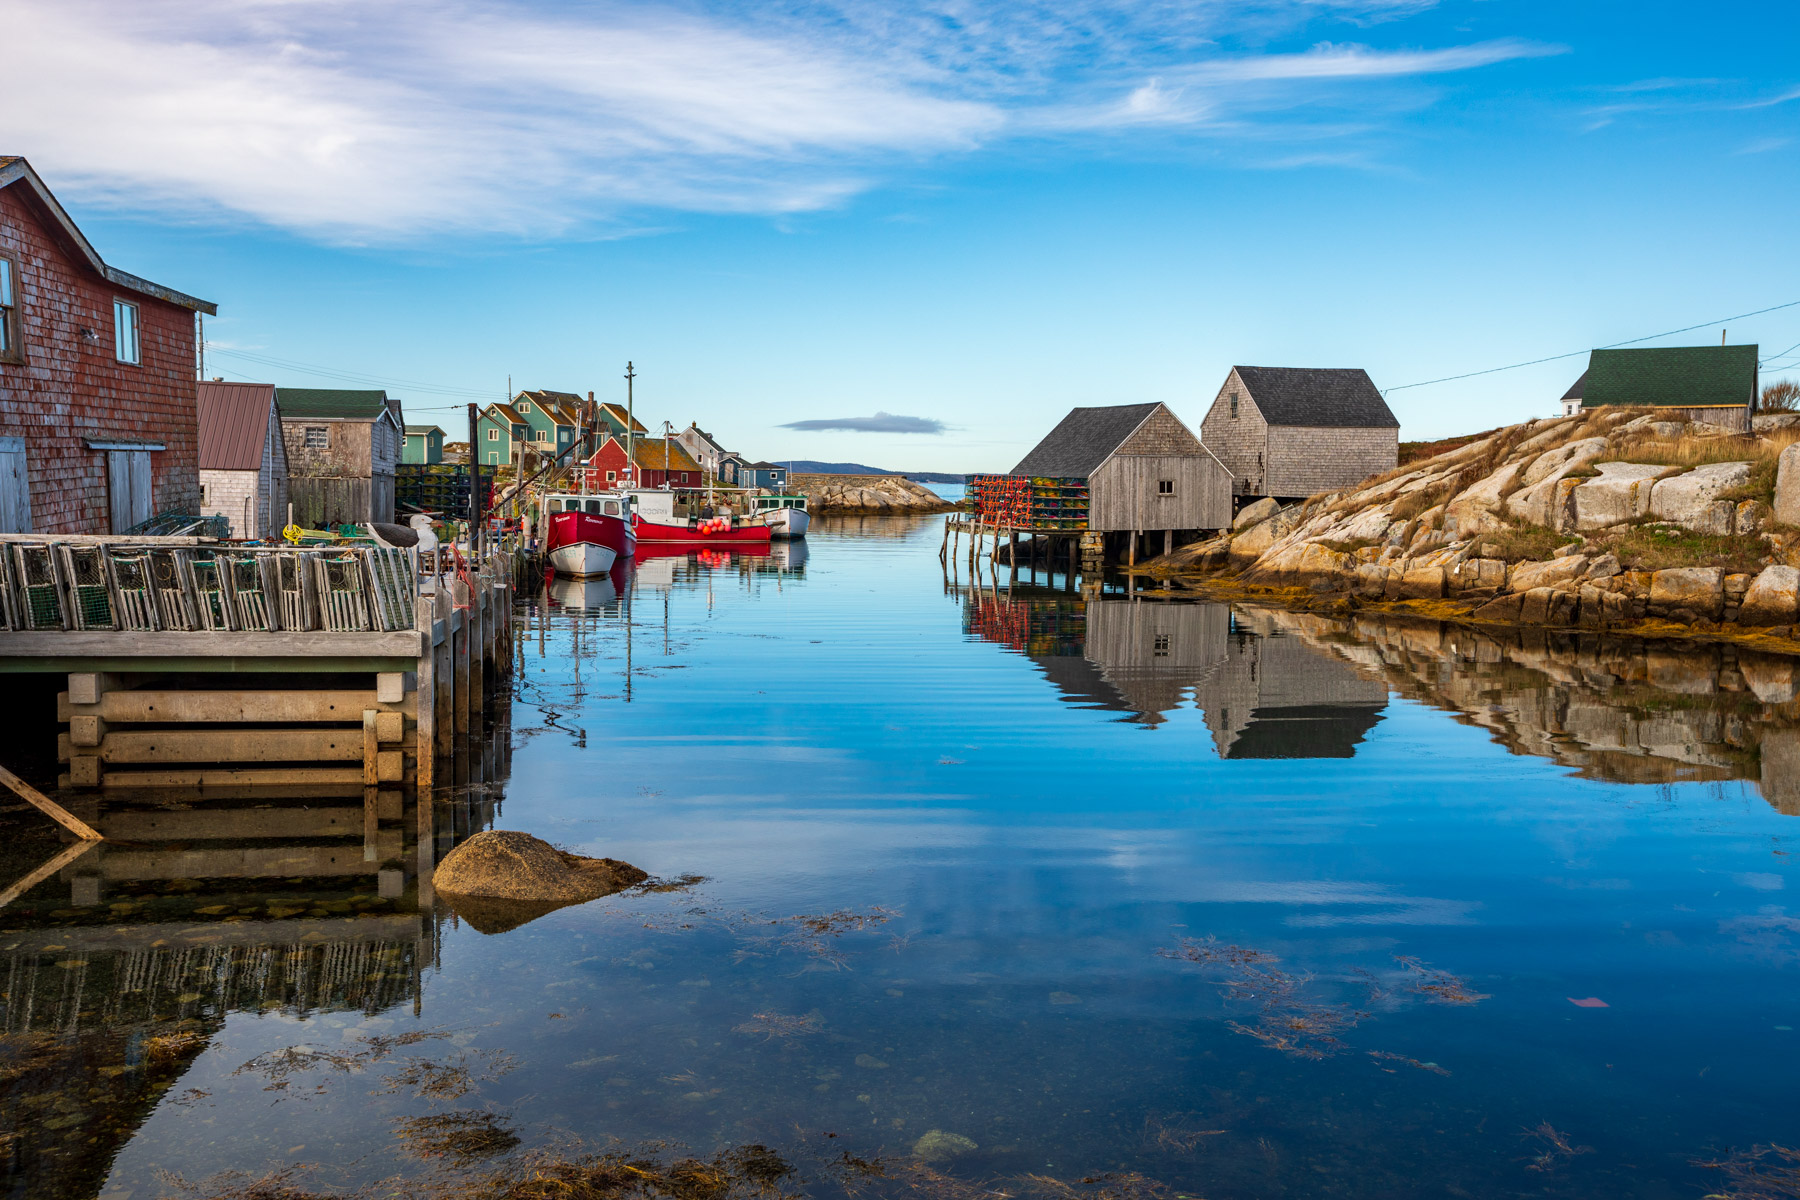 Peggy's Cove fishing huts & Reflections, Nova Scotia, Canada